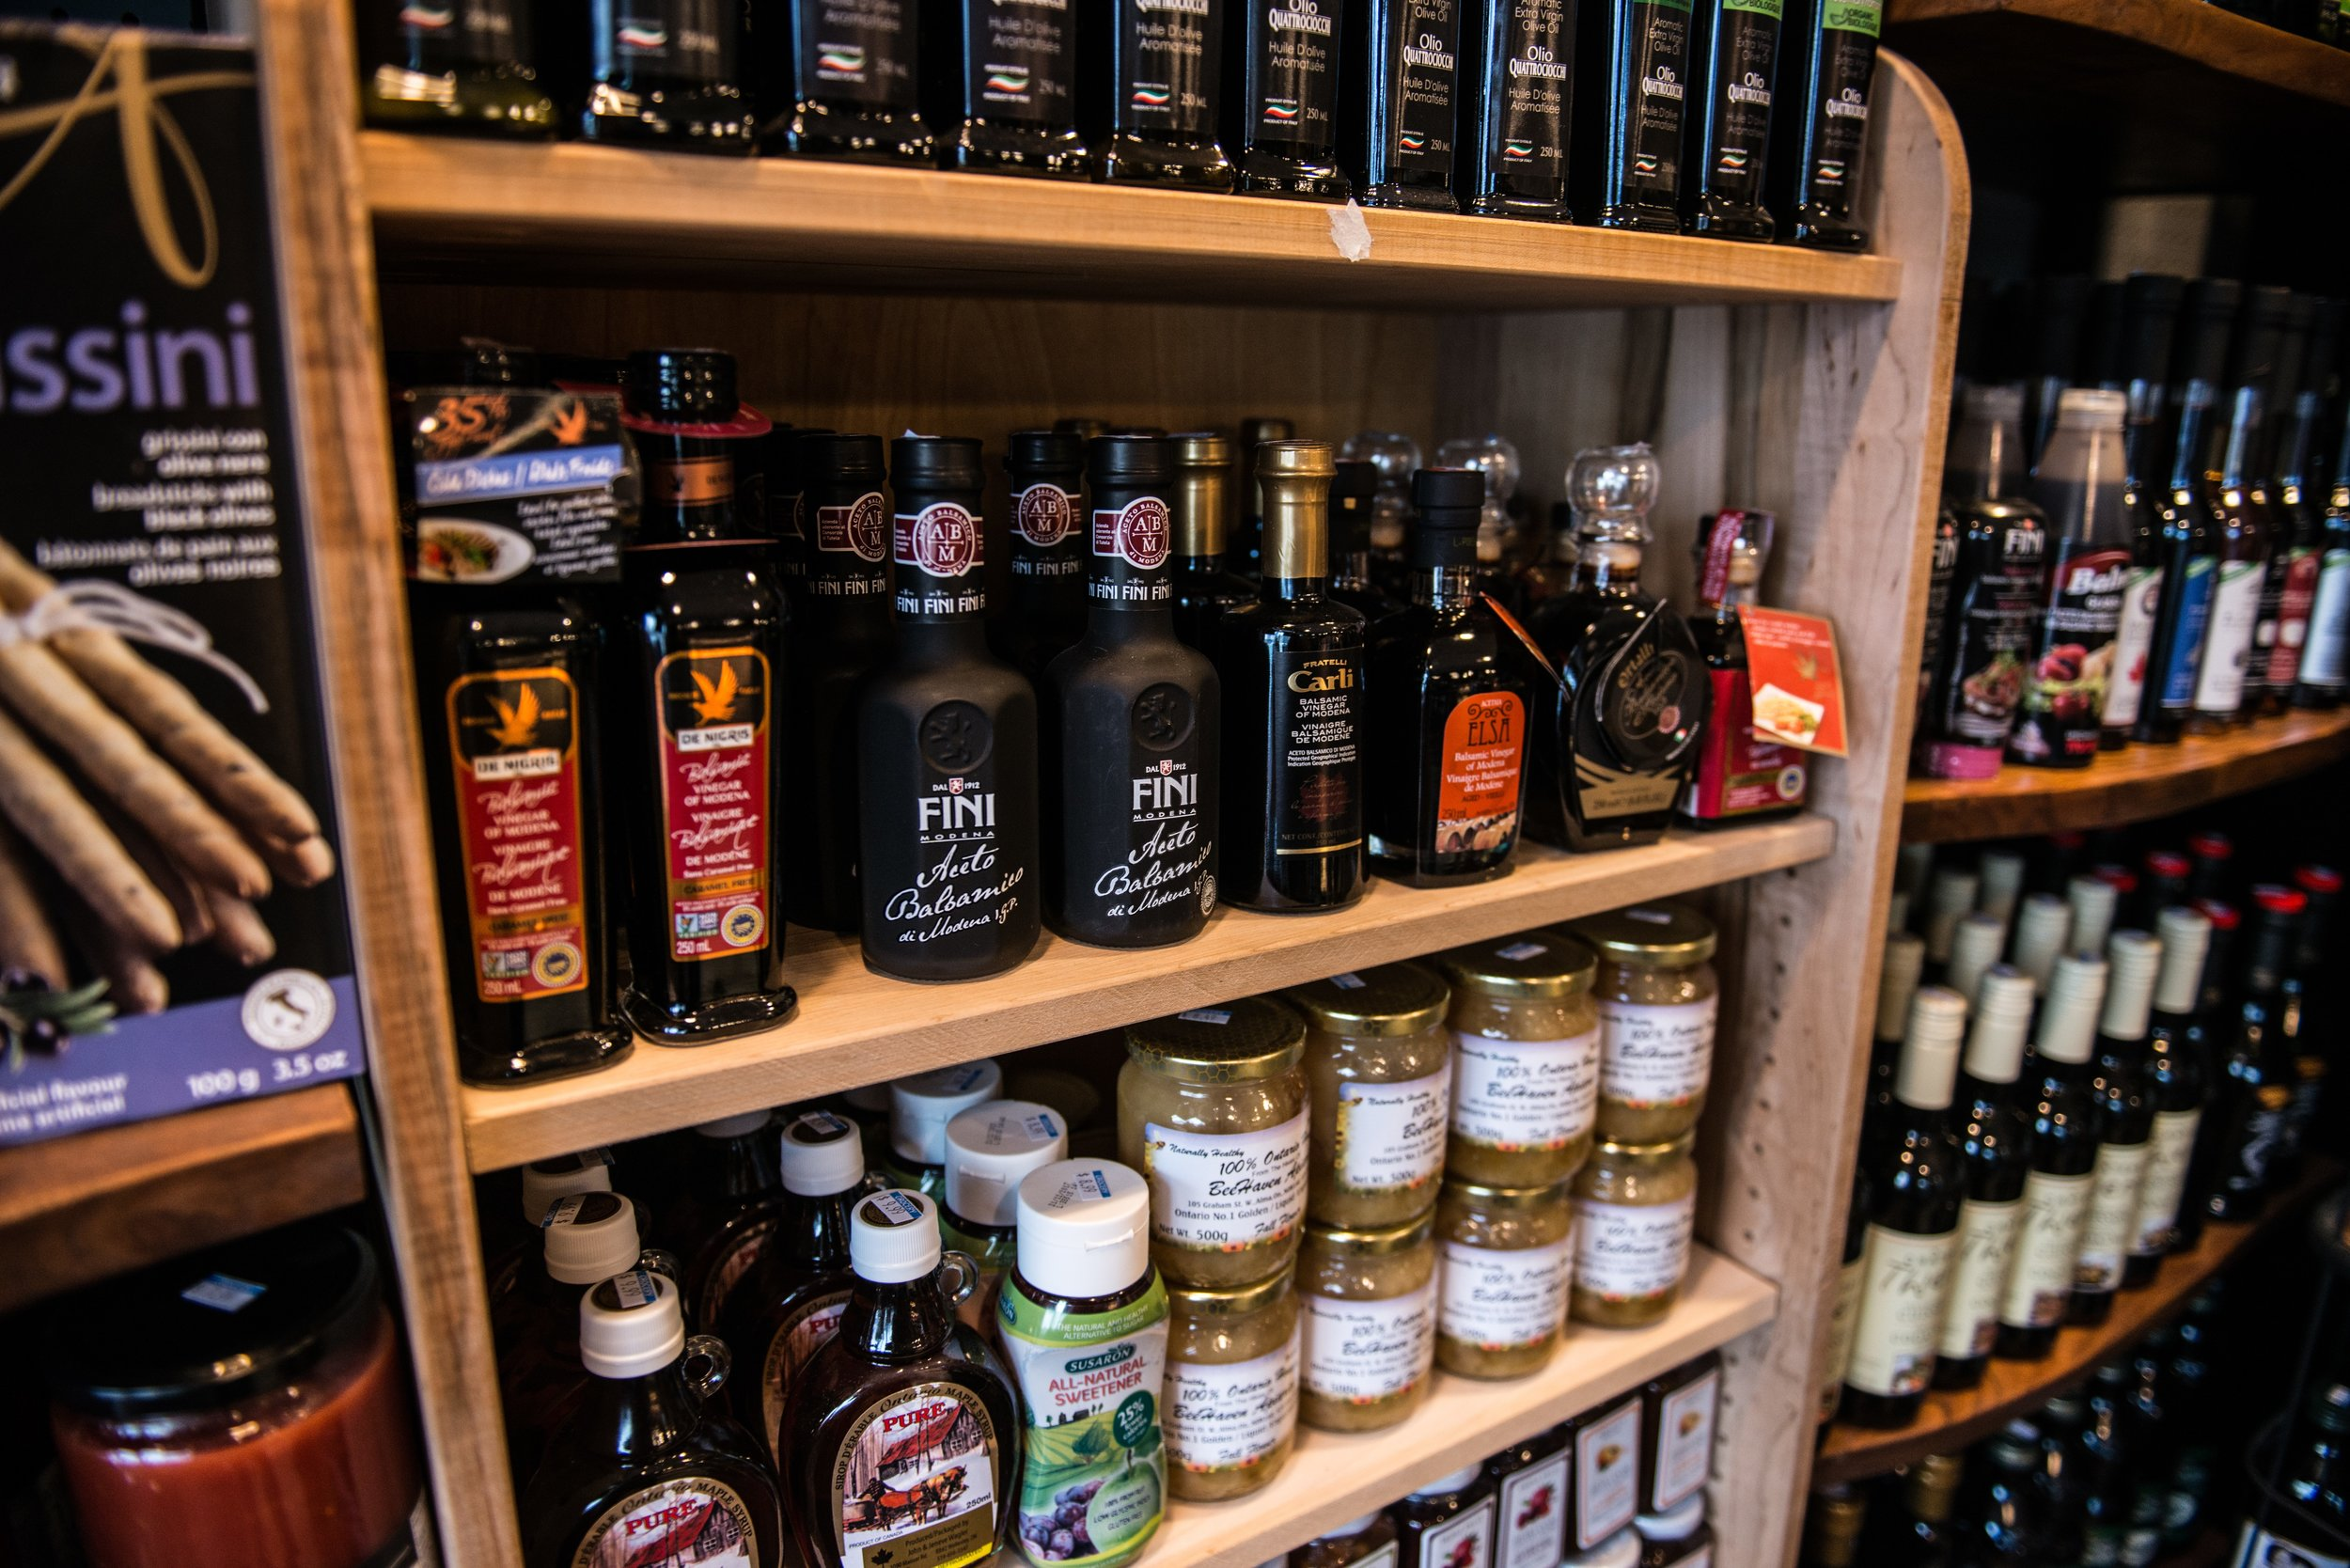 Is the only oil you know olive? Well let us introduce you to a whole world of flavor. With a large selection of oils, your taste buds will thank you for leaving the no name on the shelf.